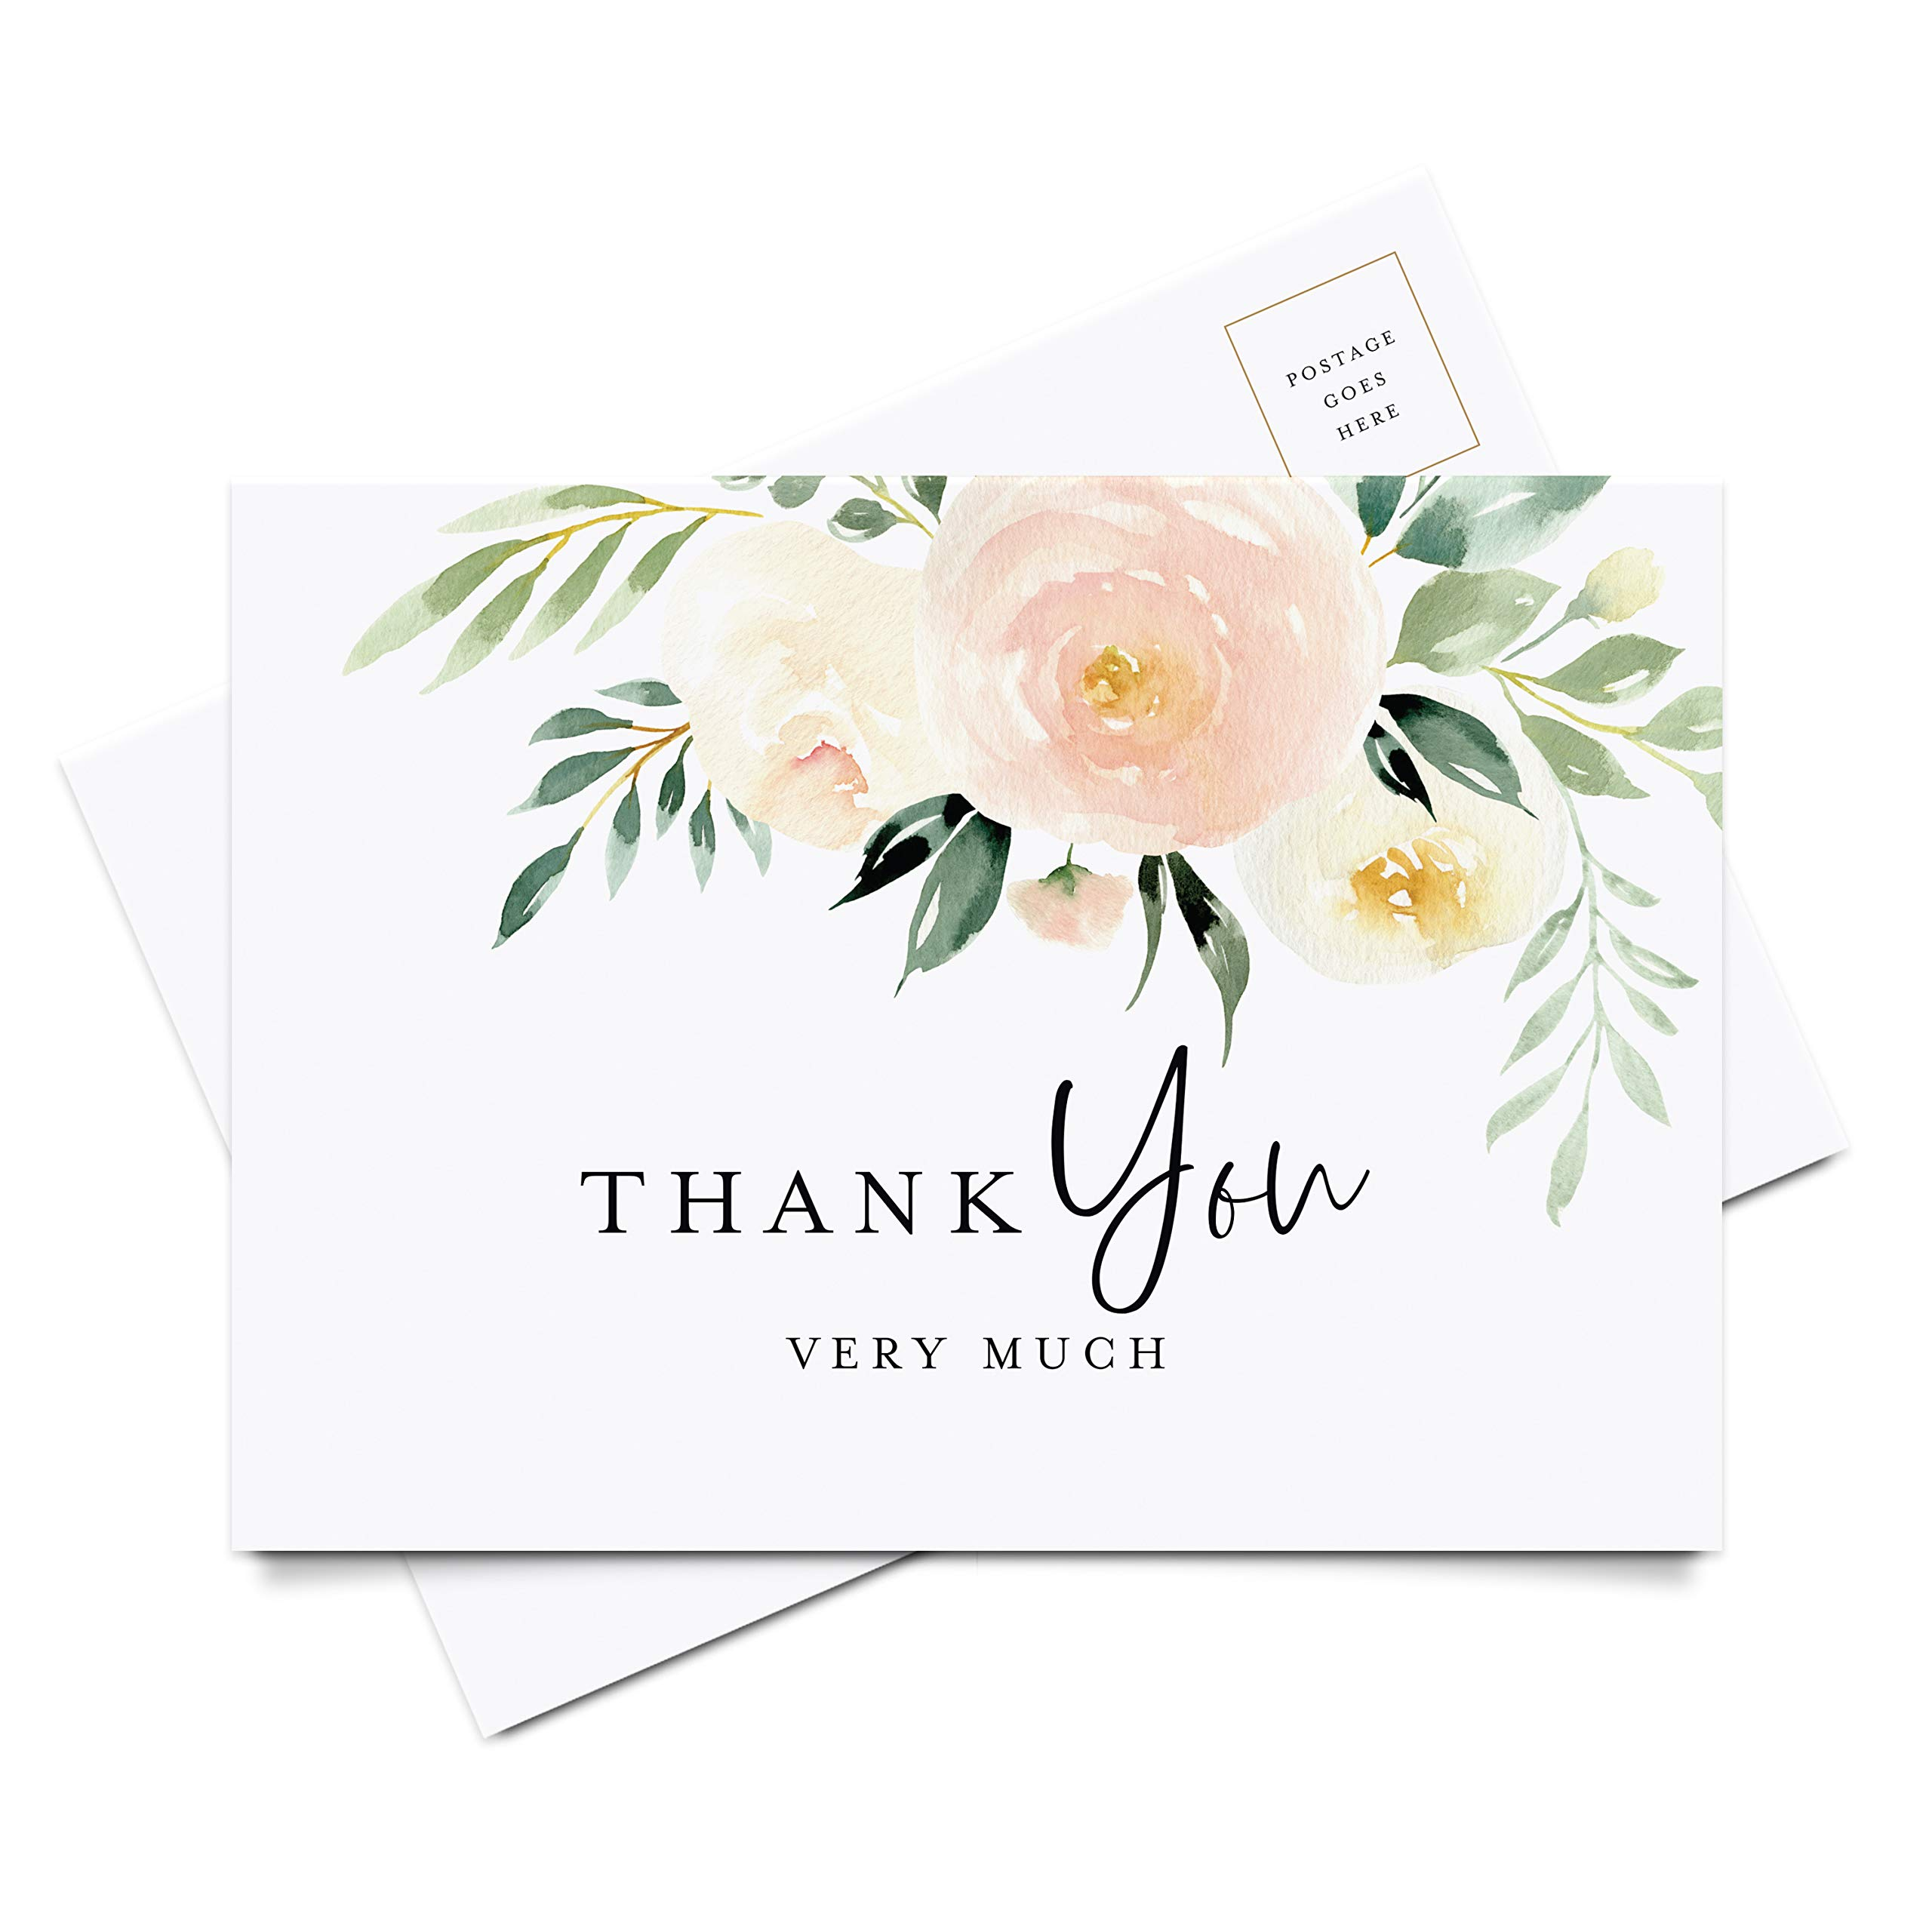 Bliss Collections Thank You Cards, Postcard Style Notes, Blush Floral Design Perfect for: Wedding, Bridal Shower, Baby Shower, Birthday, Funeral or a Great Way Just to Say Thanks, Pack of 50 4x6 Cards by Bliss Collections